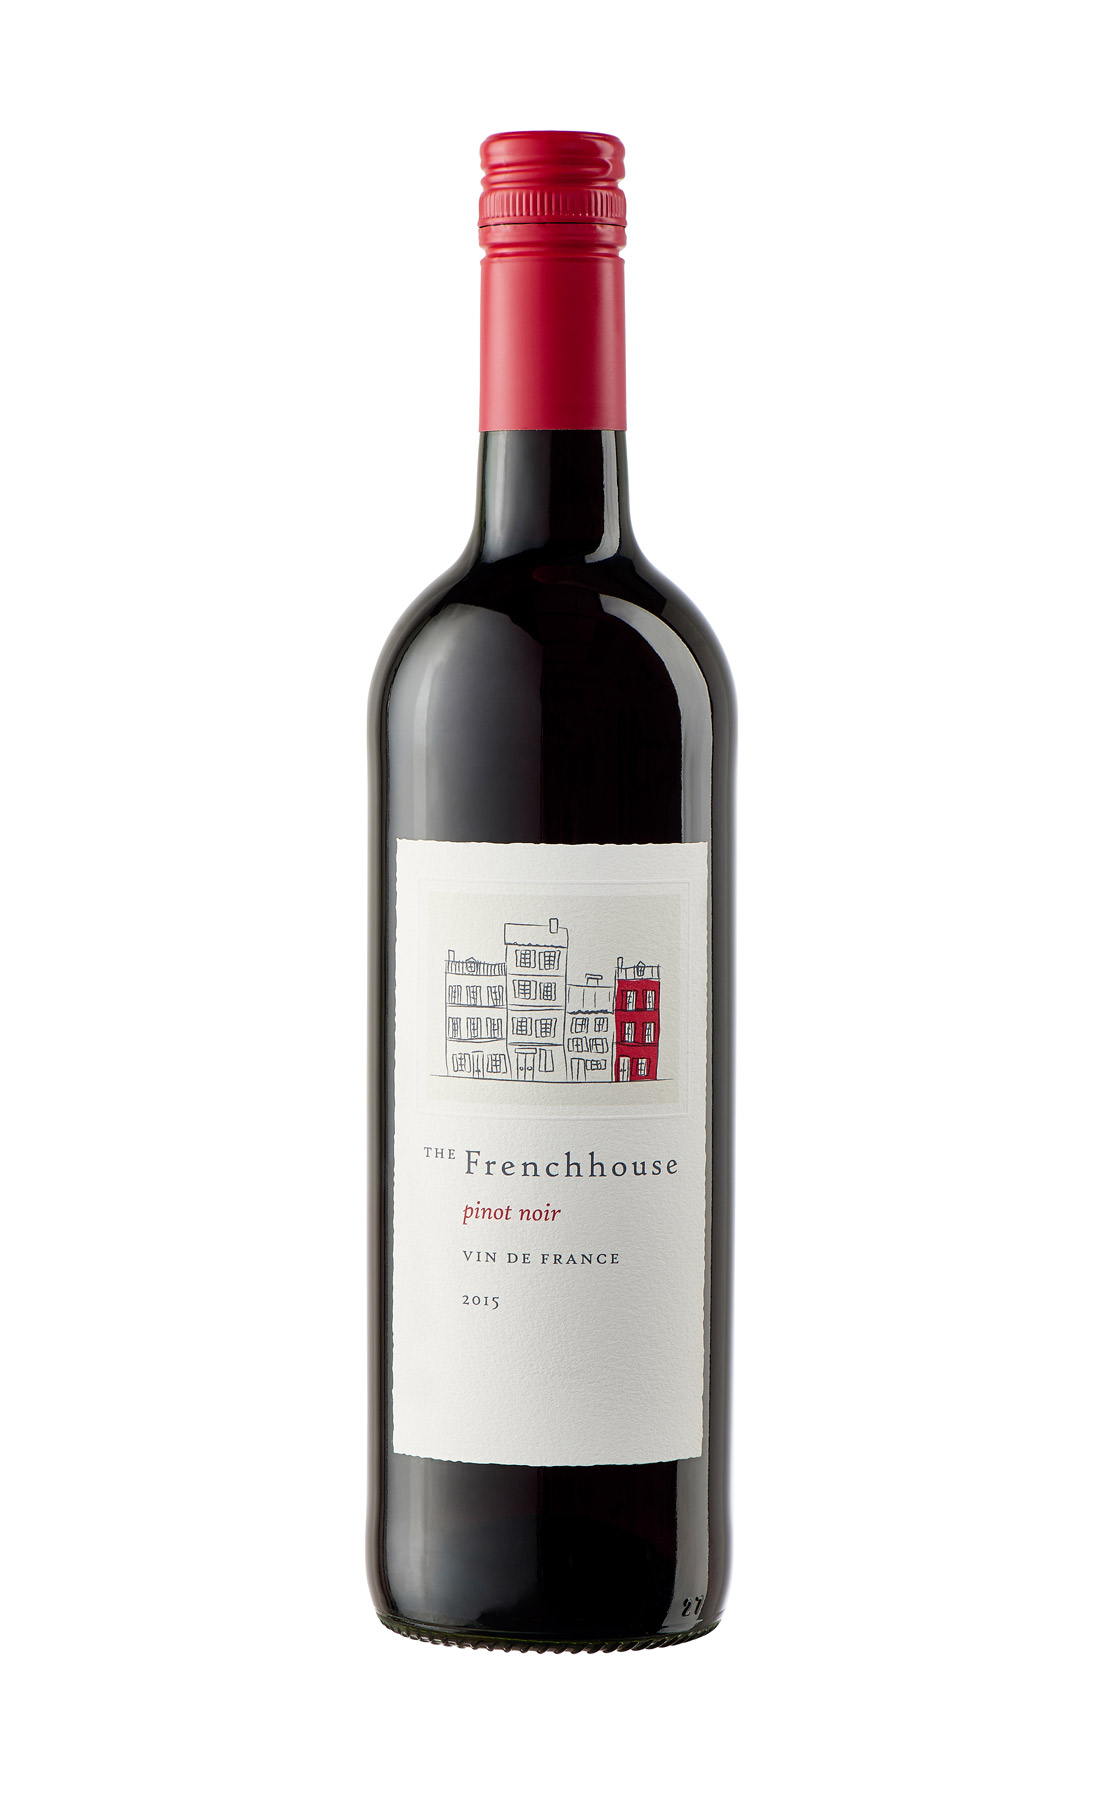 The Frenchhouse Pinot Noir